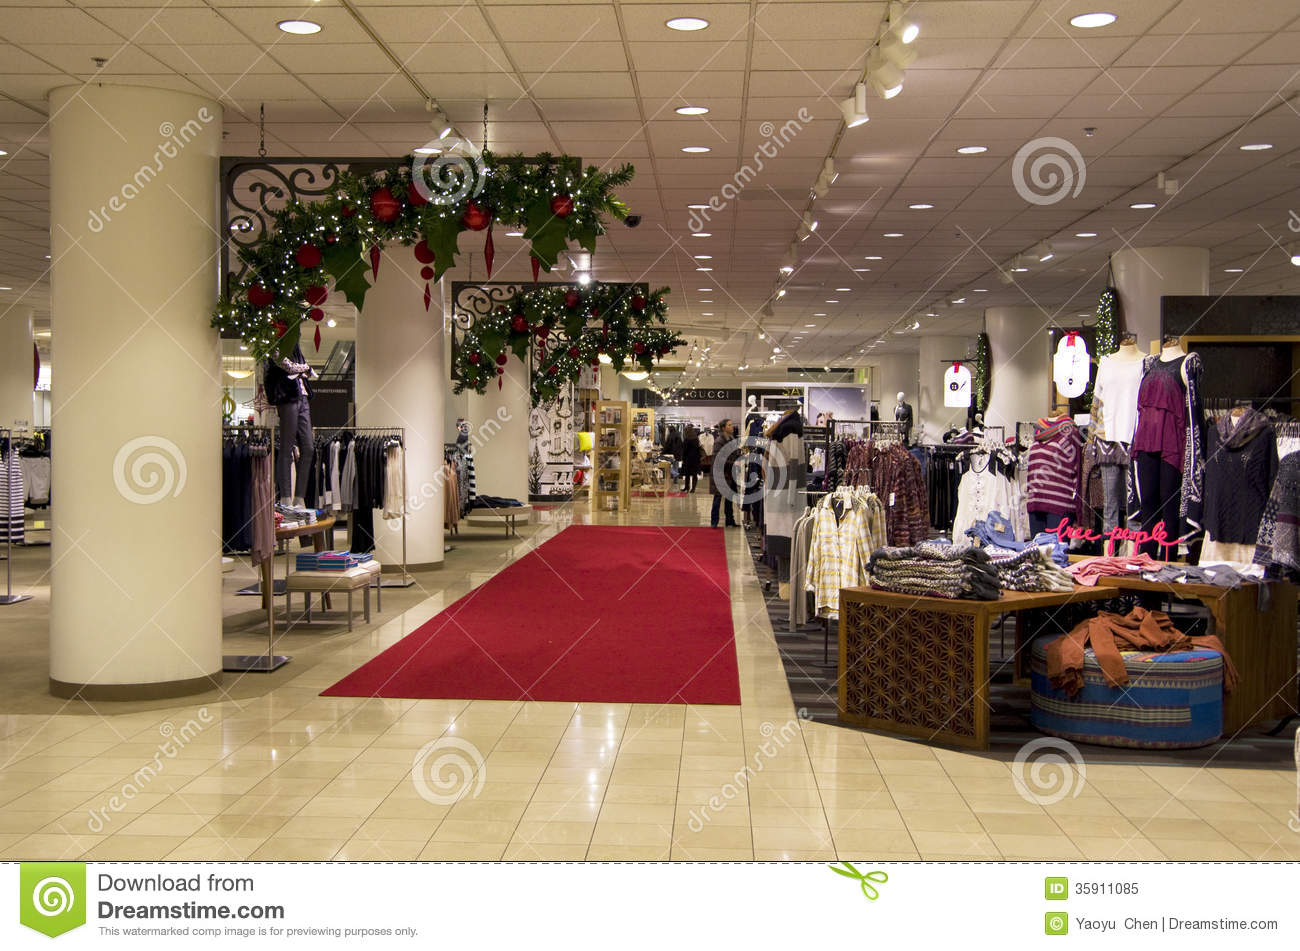 Decoration stores department store mall shopping tree ligh List of home decor stores